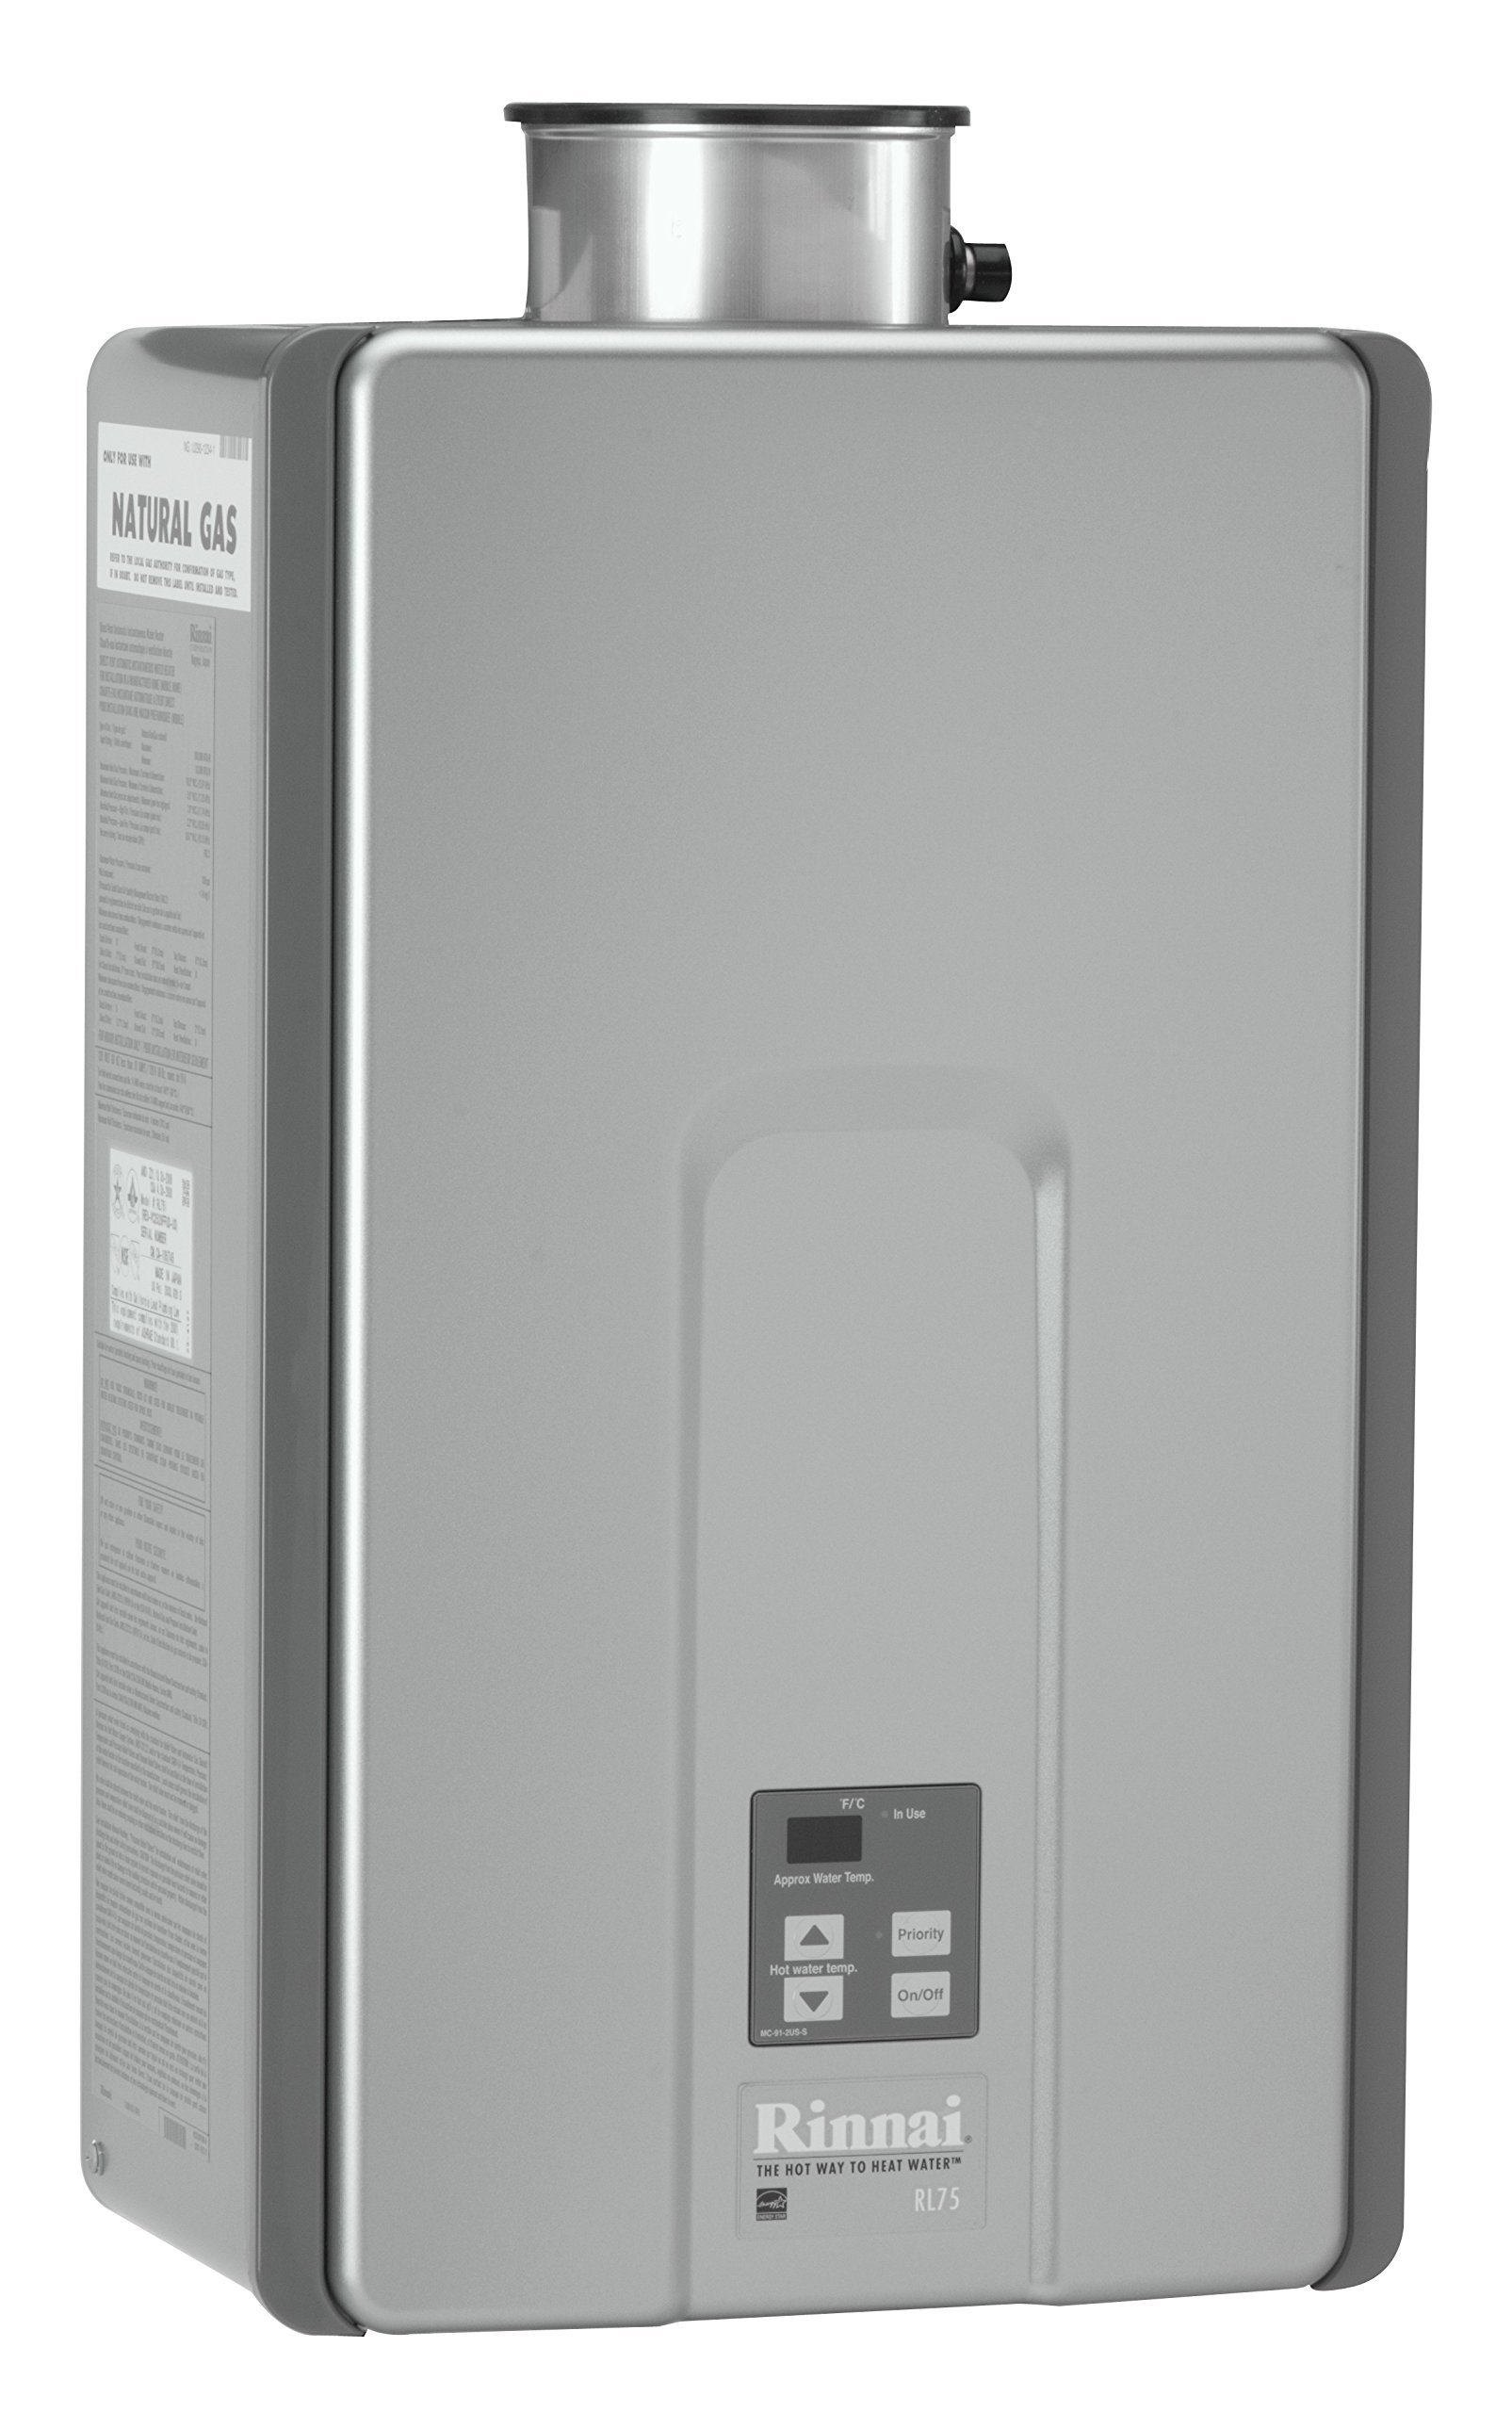 Rinnai RL75iN Natural Gas Tankless Water Heater, 7.5 Gallons Per Minute by Rinnai (Image #3)